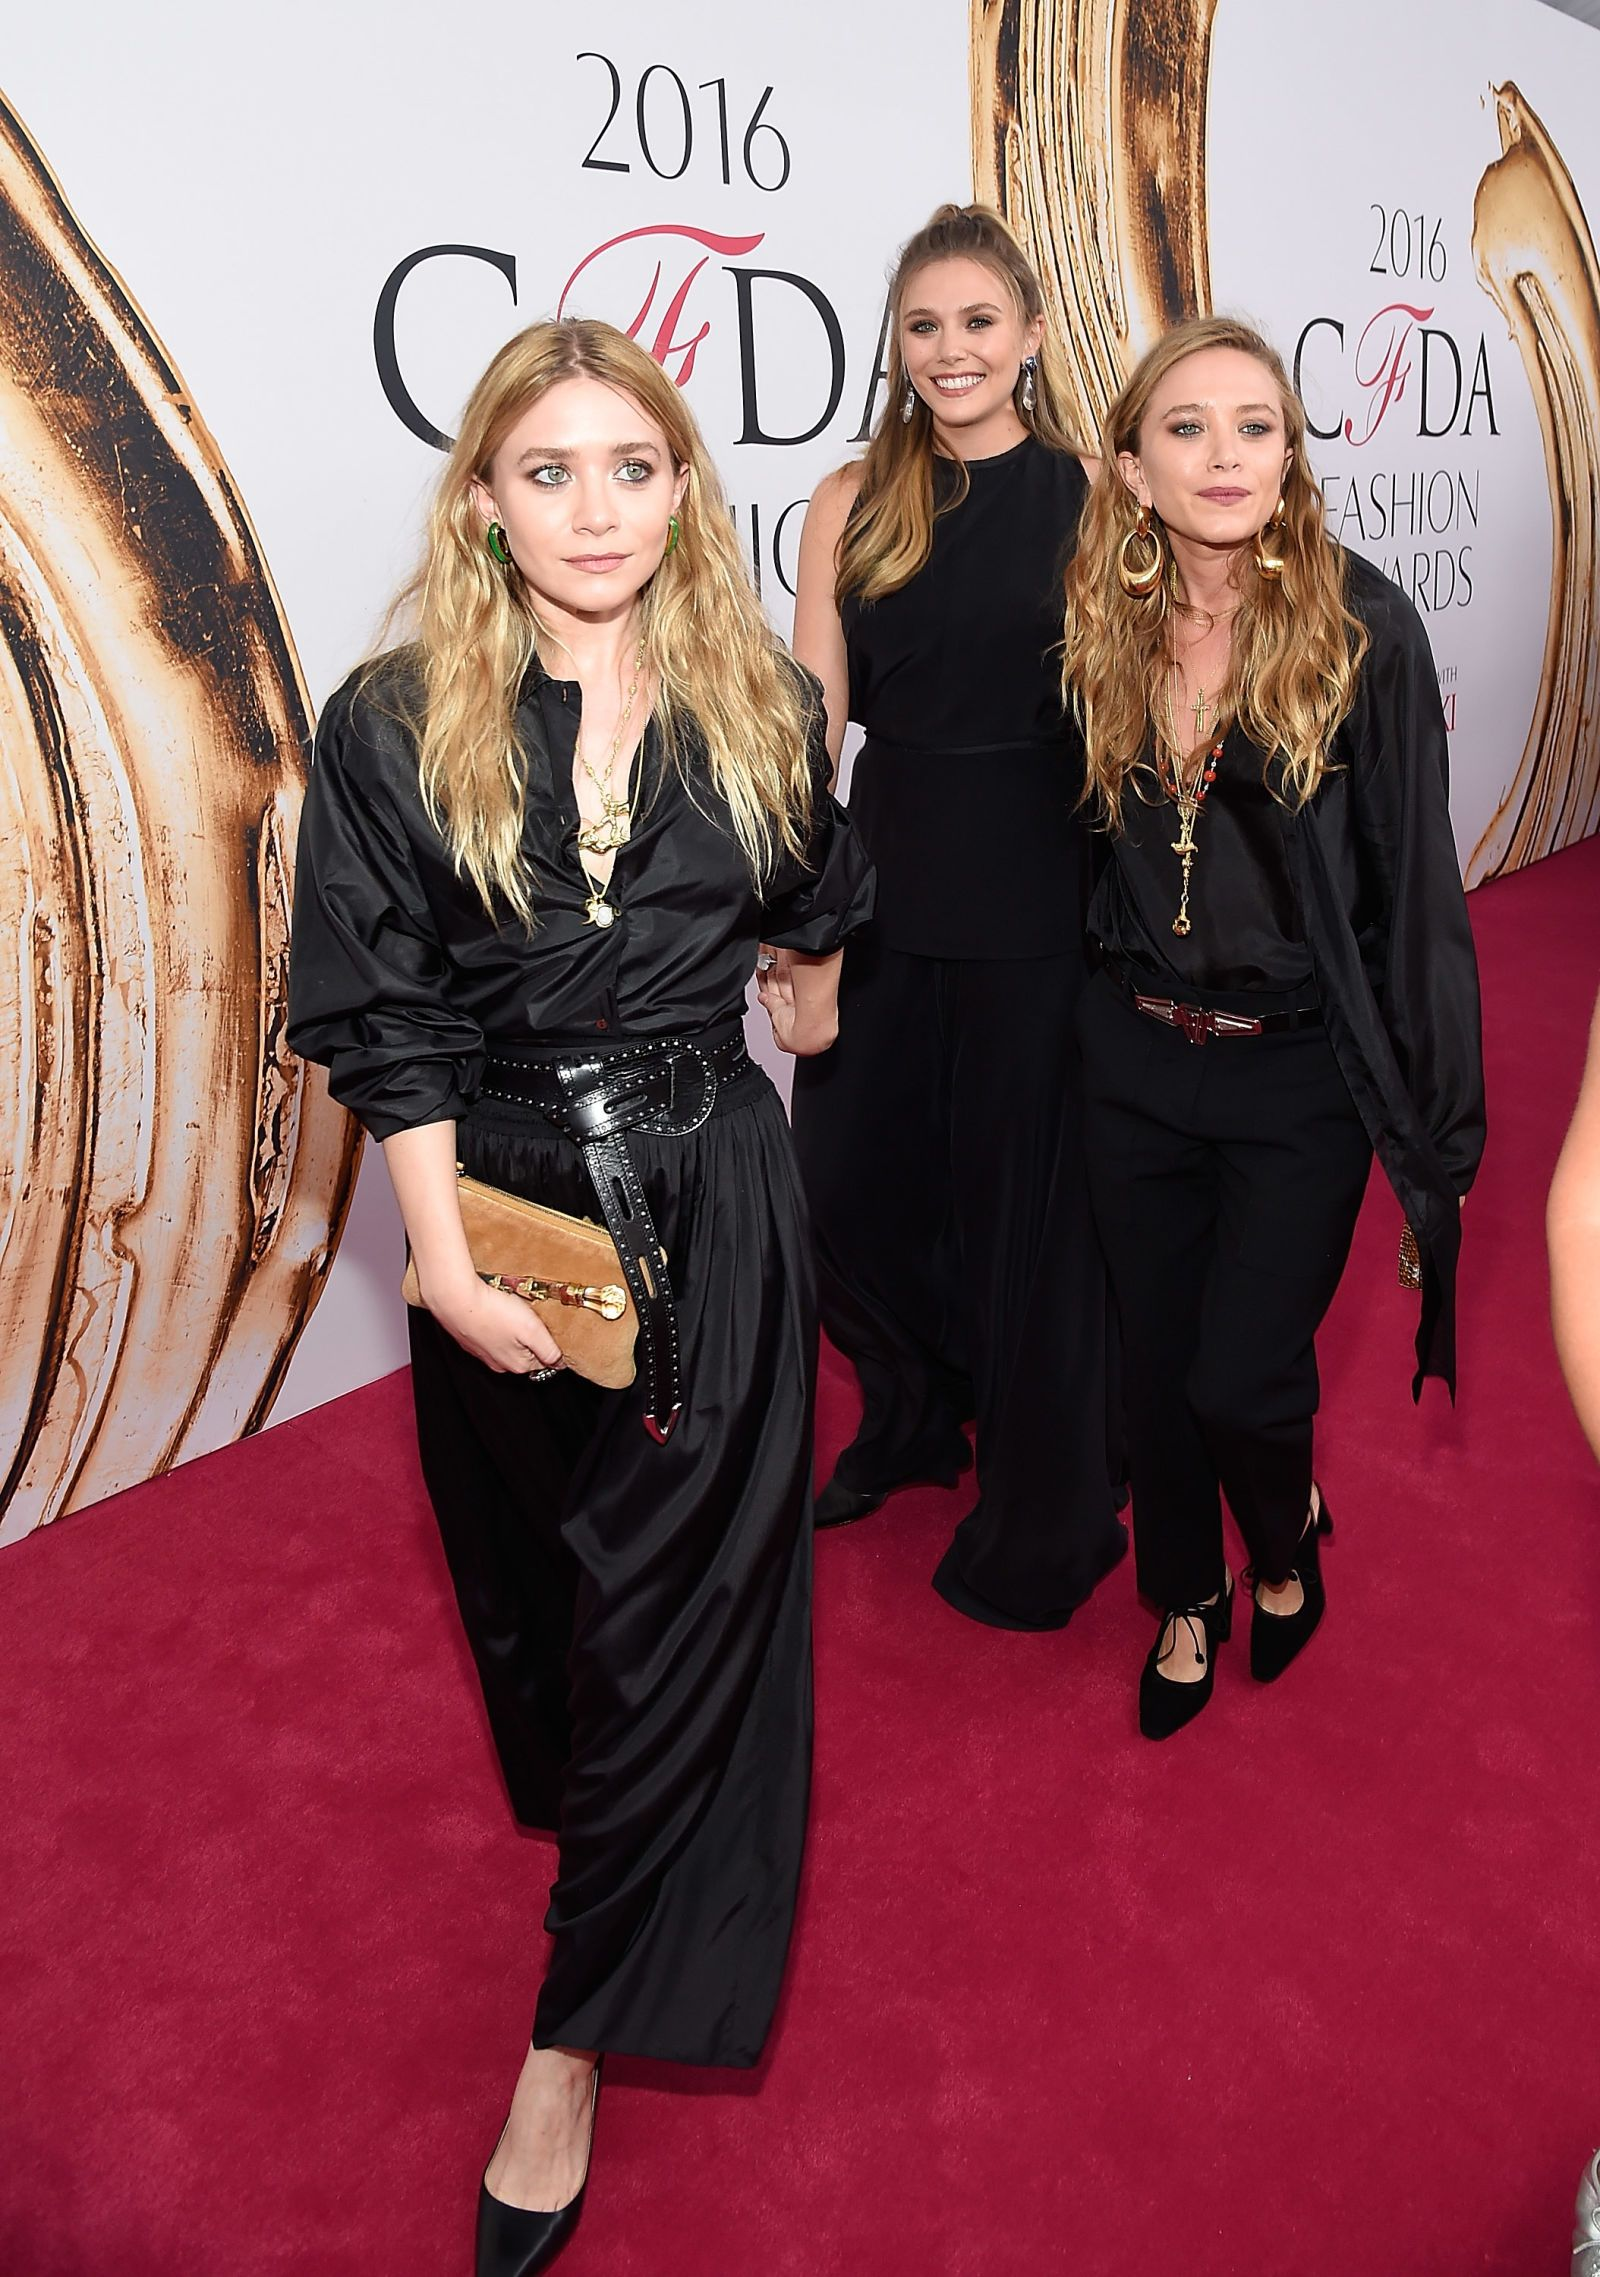 All The Three Olsen Sisters Arrived At The Cfdas Together Ashley Olsen Ashley Mary Kate Olsen Fashion